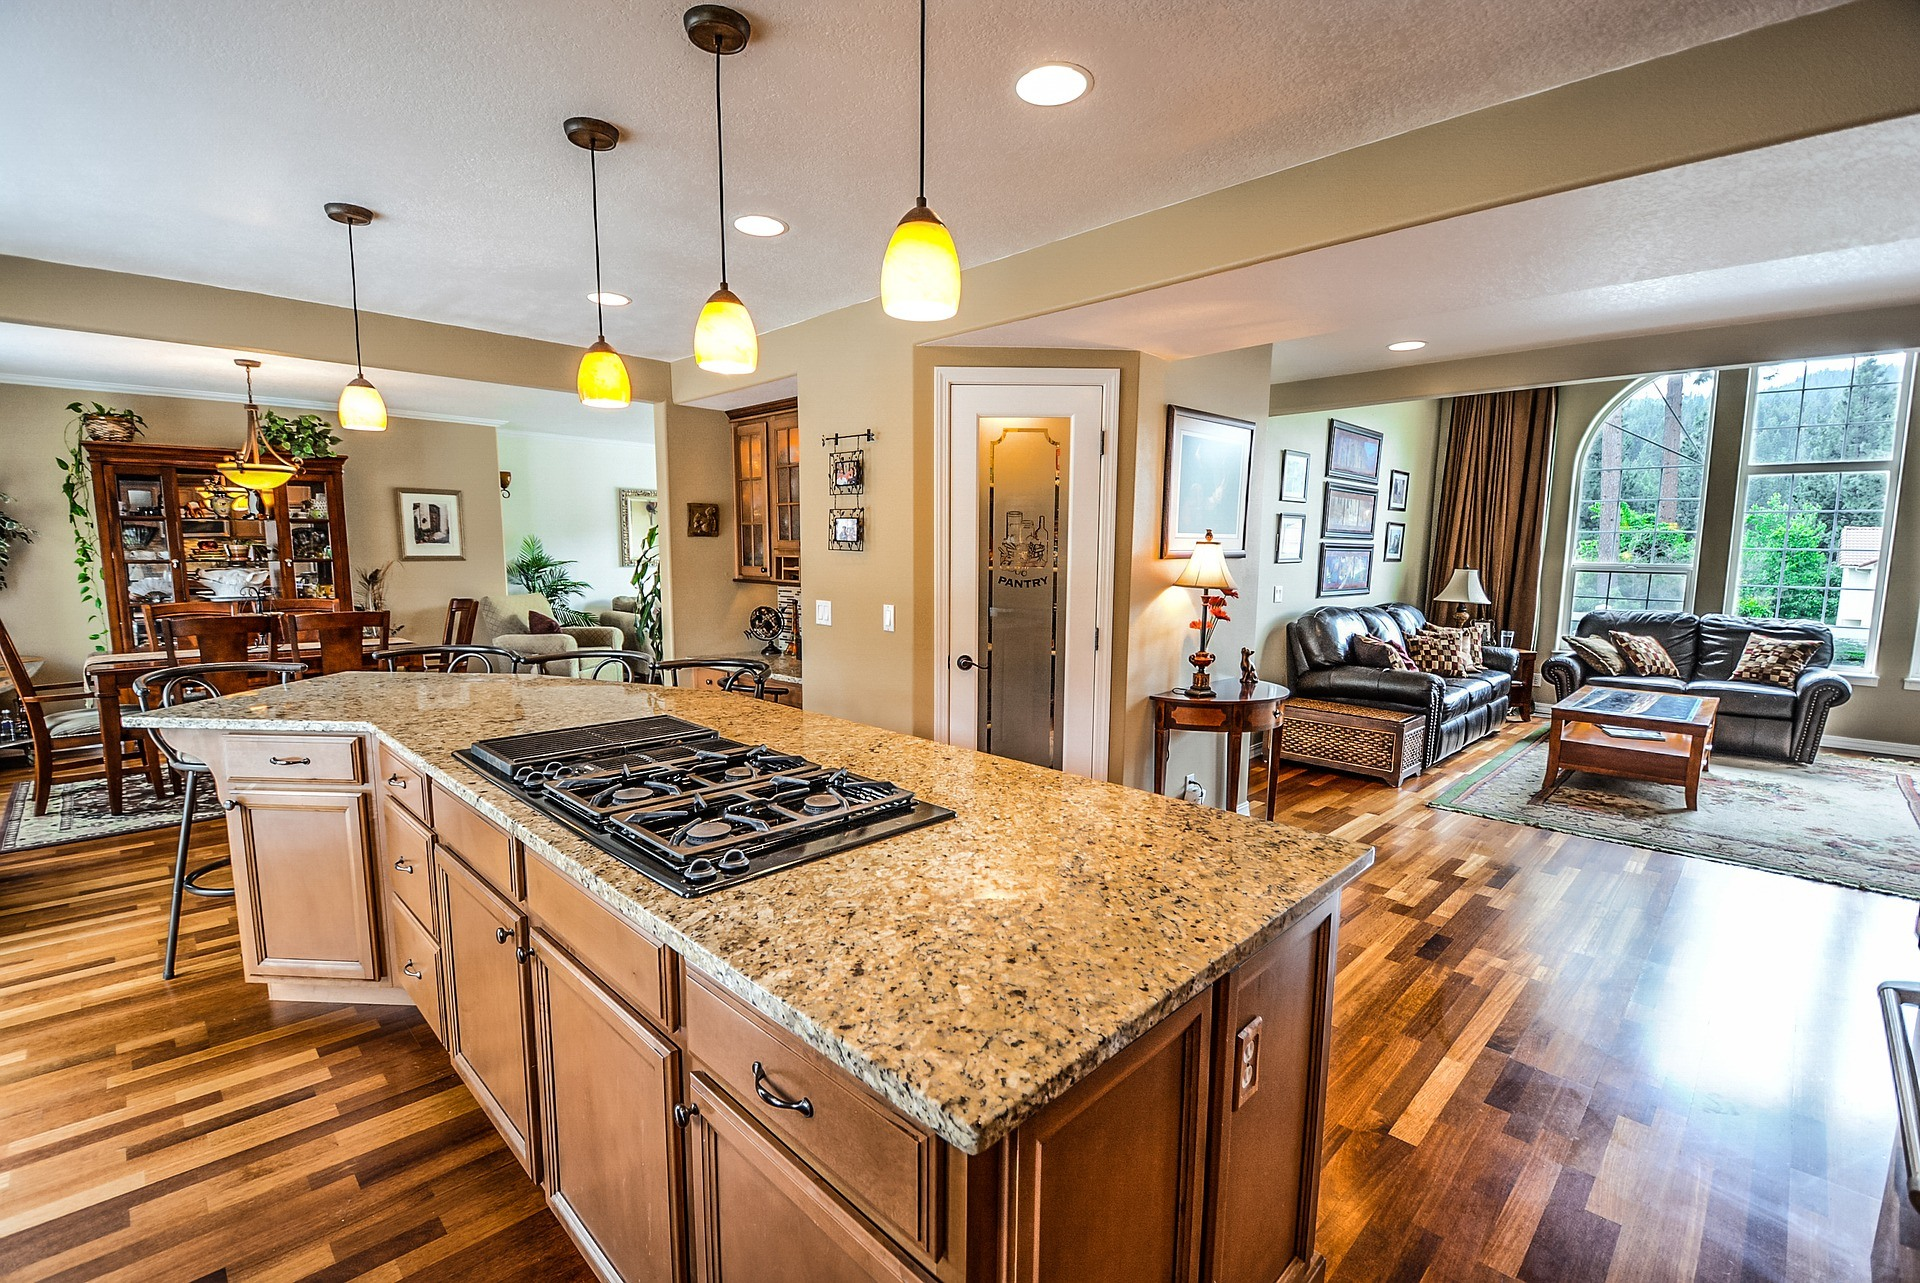 Shelton updated homes for sale with hardwood floors